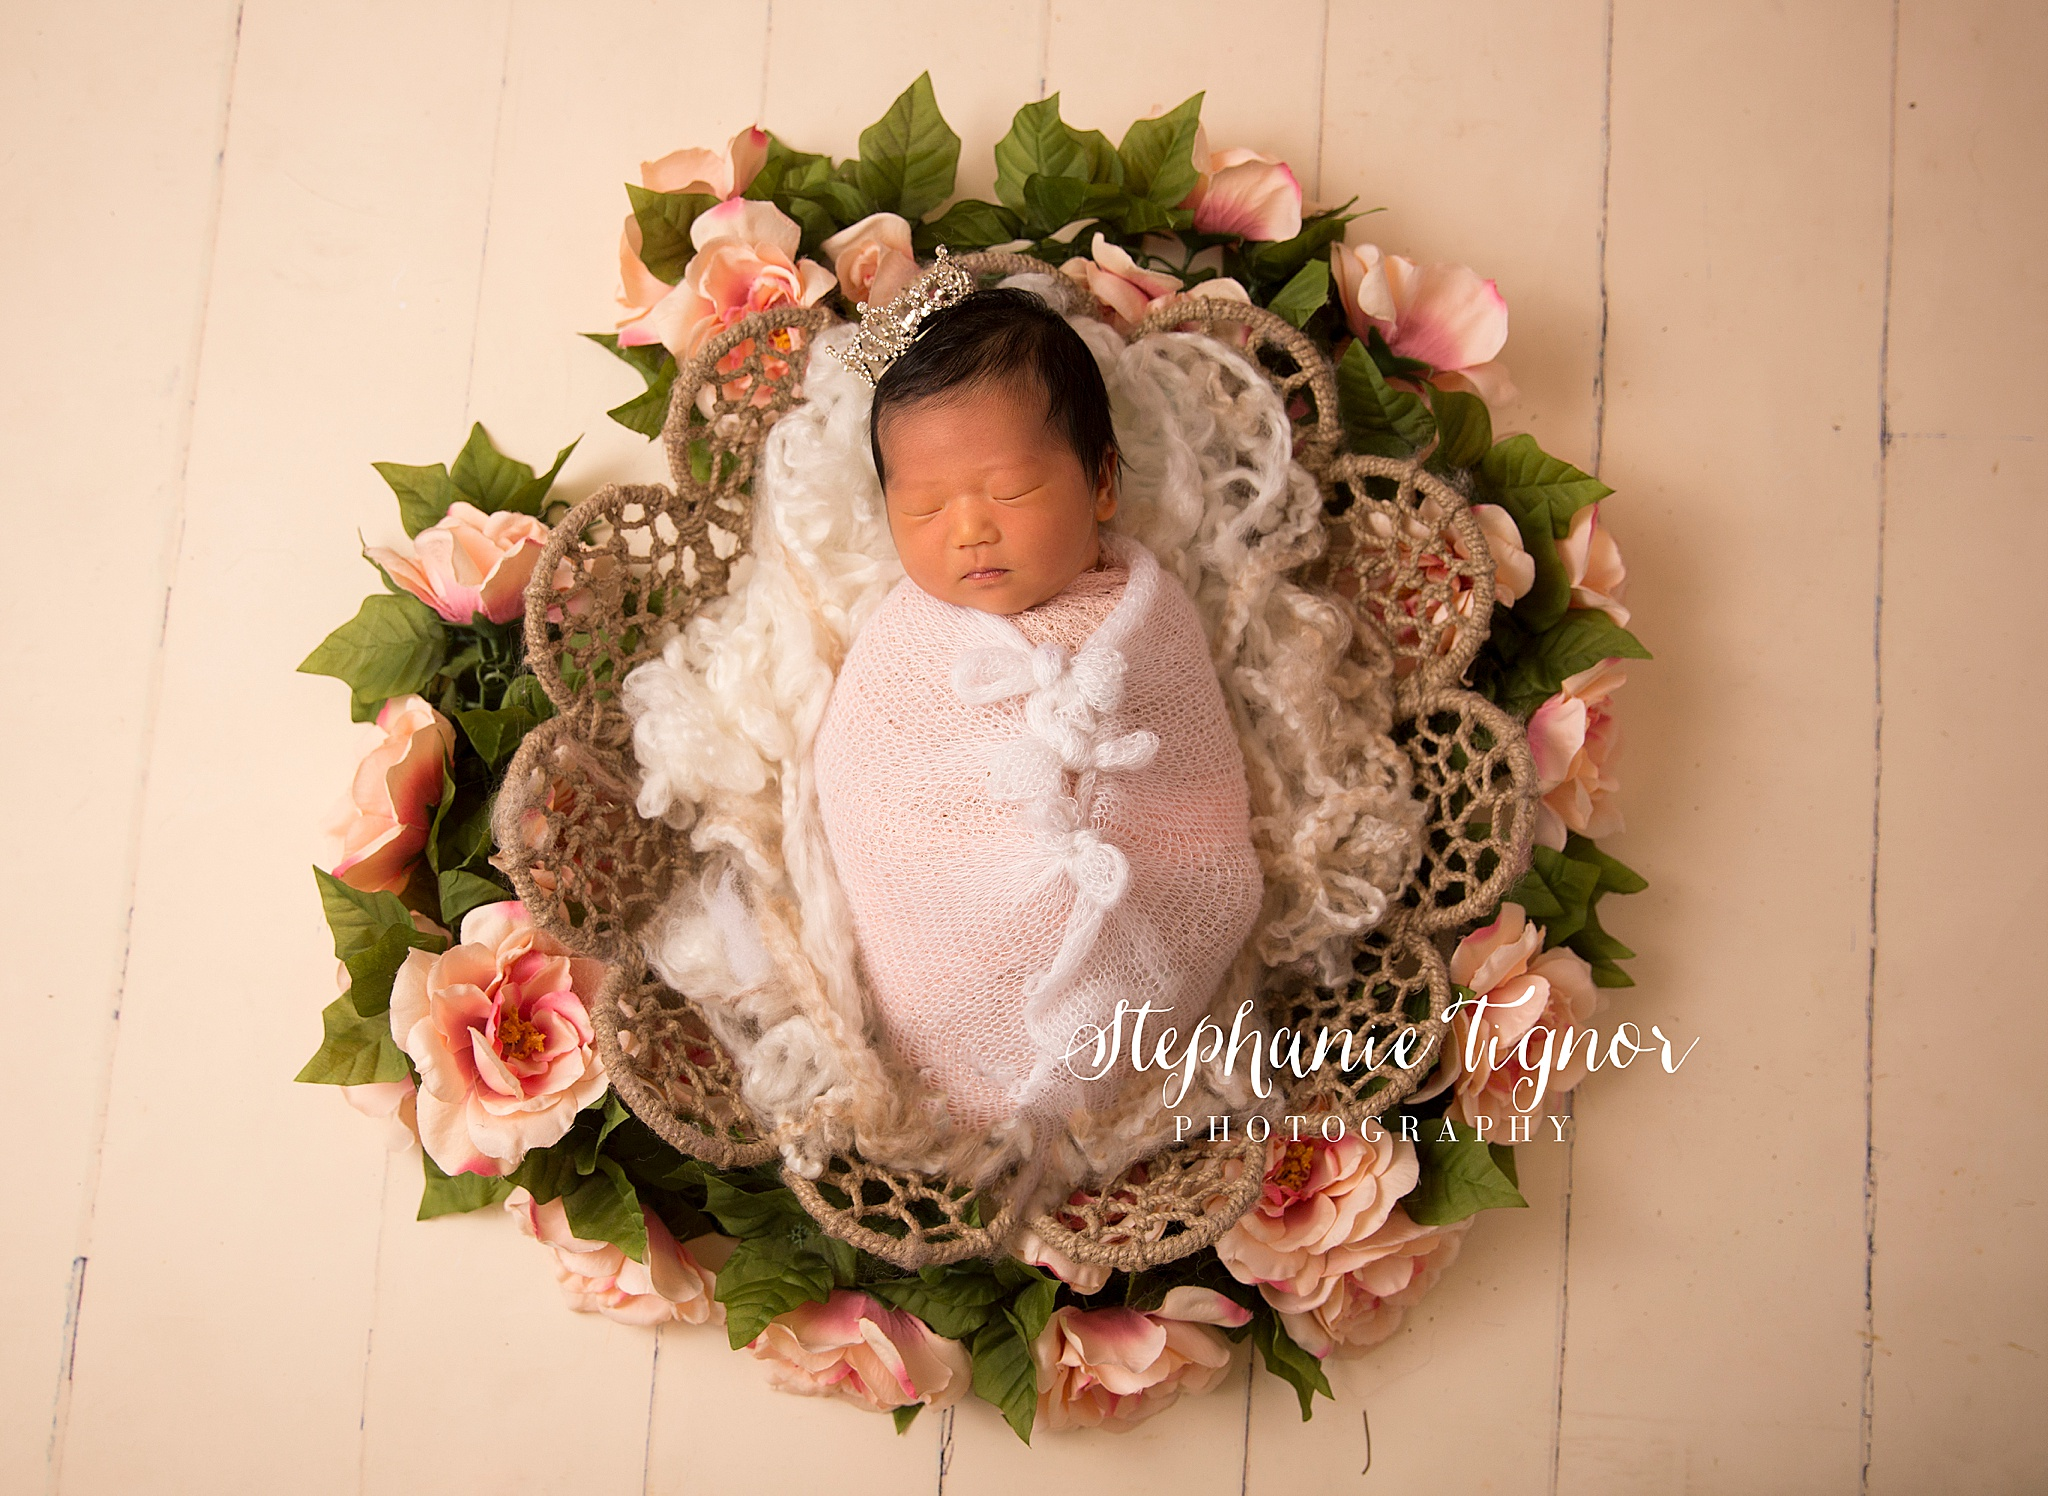 Stephanie Tignor Photography_Newborn Photographer_0072.jpg